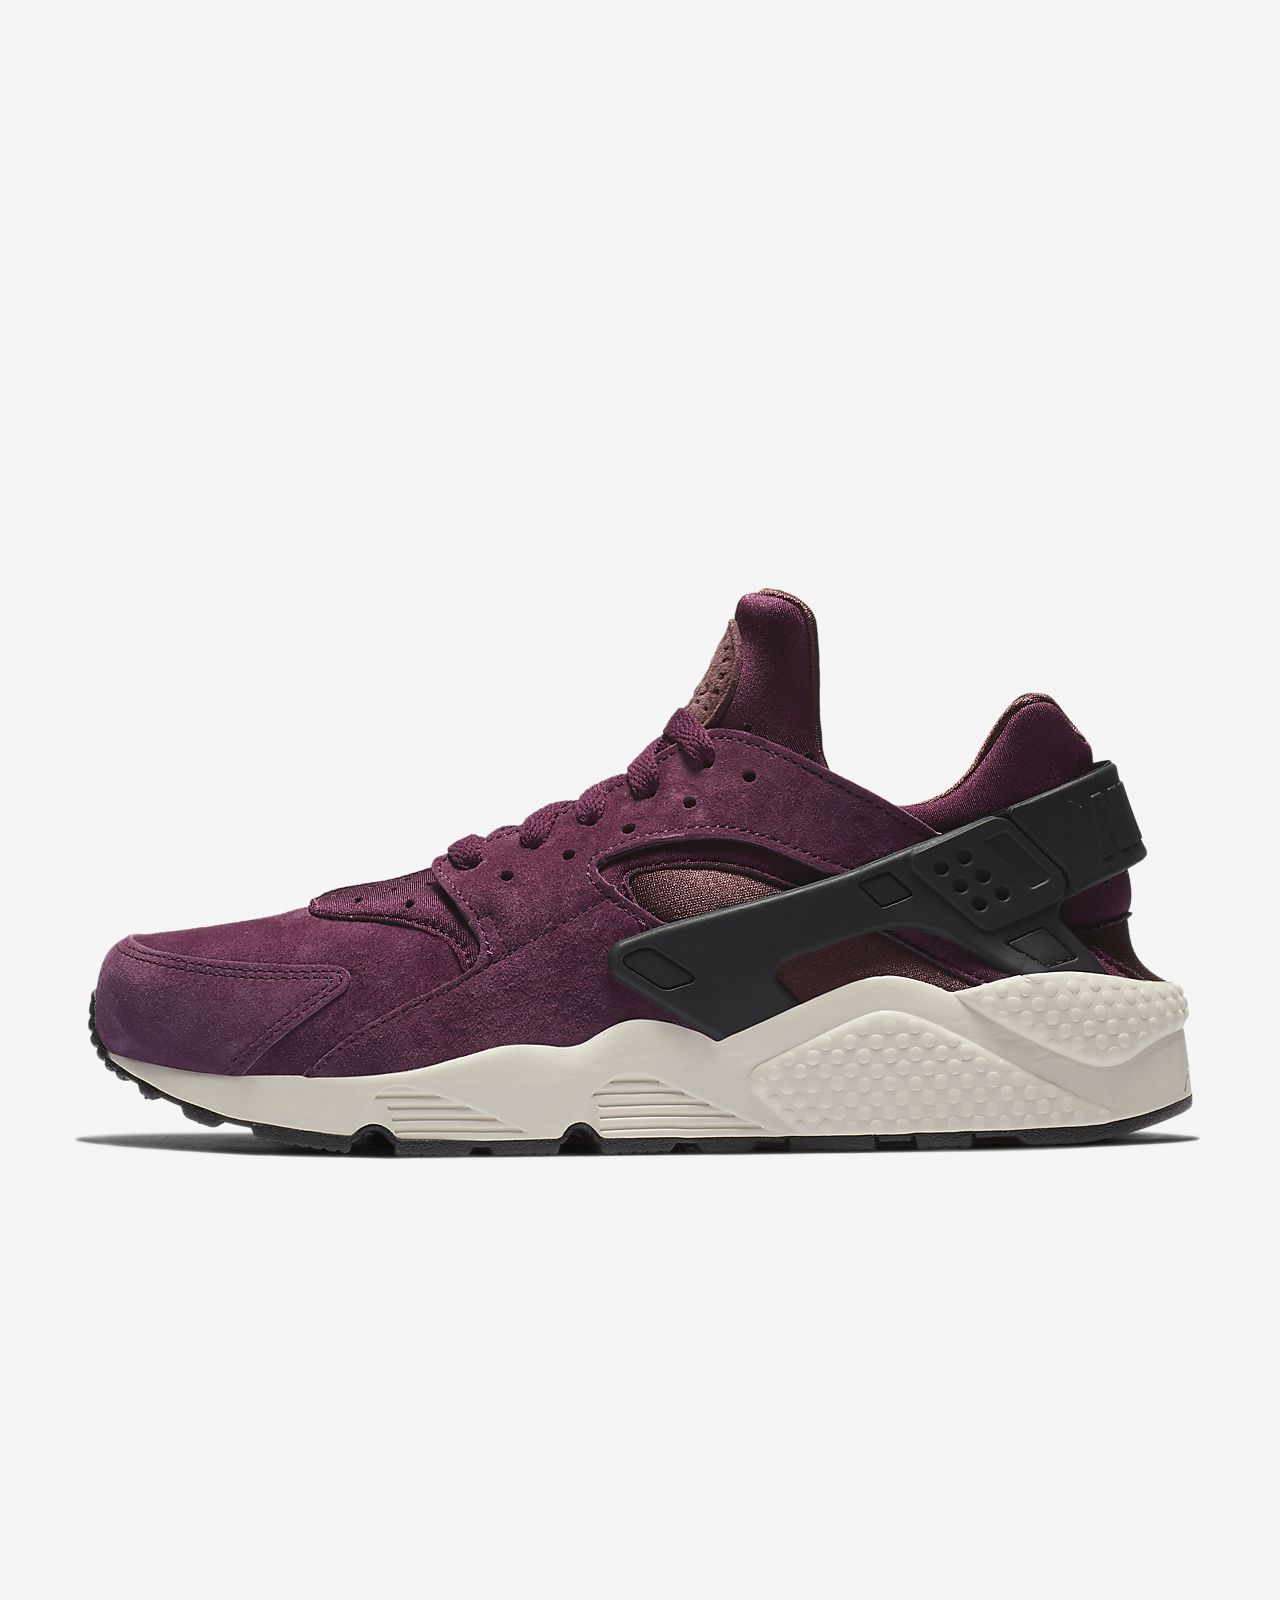 reputable site c5269 6bc94 Men s Shoe. Nike Air Huarache Premium